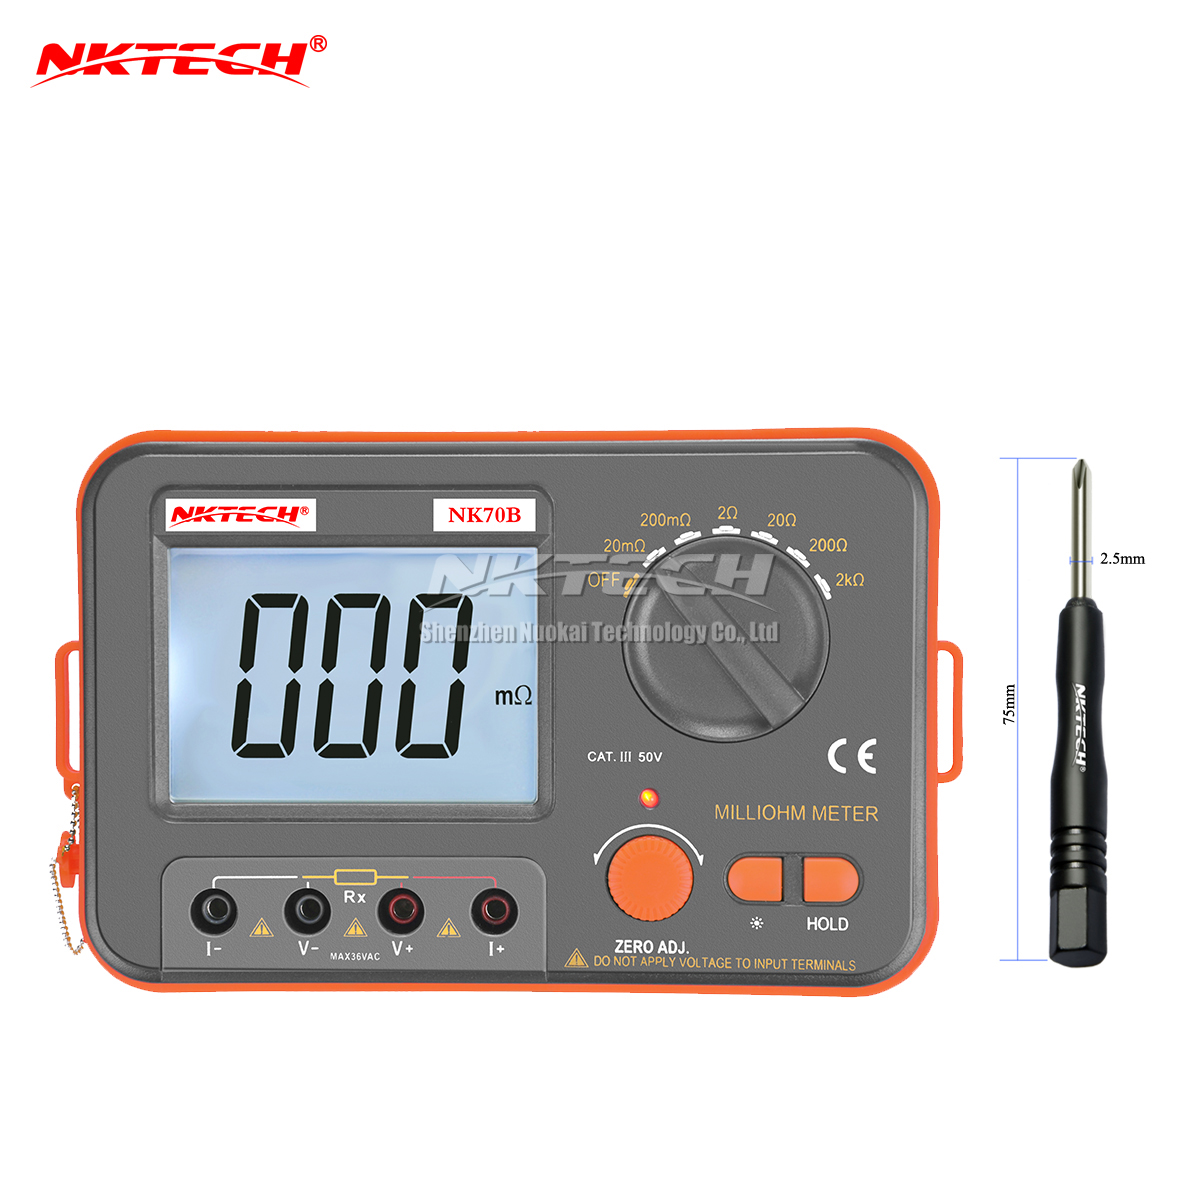 NKTECH Digital Multimeter Multimetro Diagnostic tool NK70B Tester Milli ohm Backlit Meter With 4 Wire Test